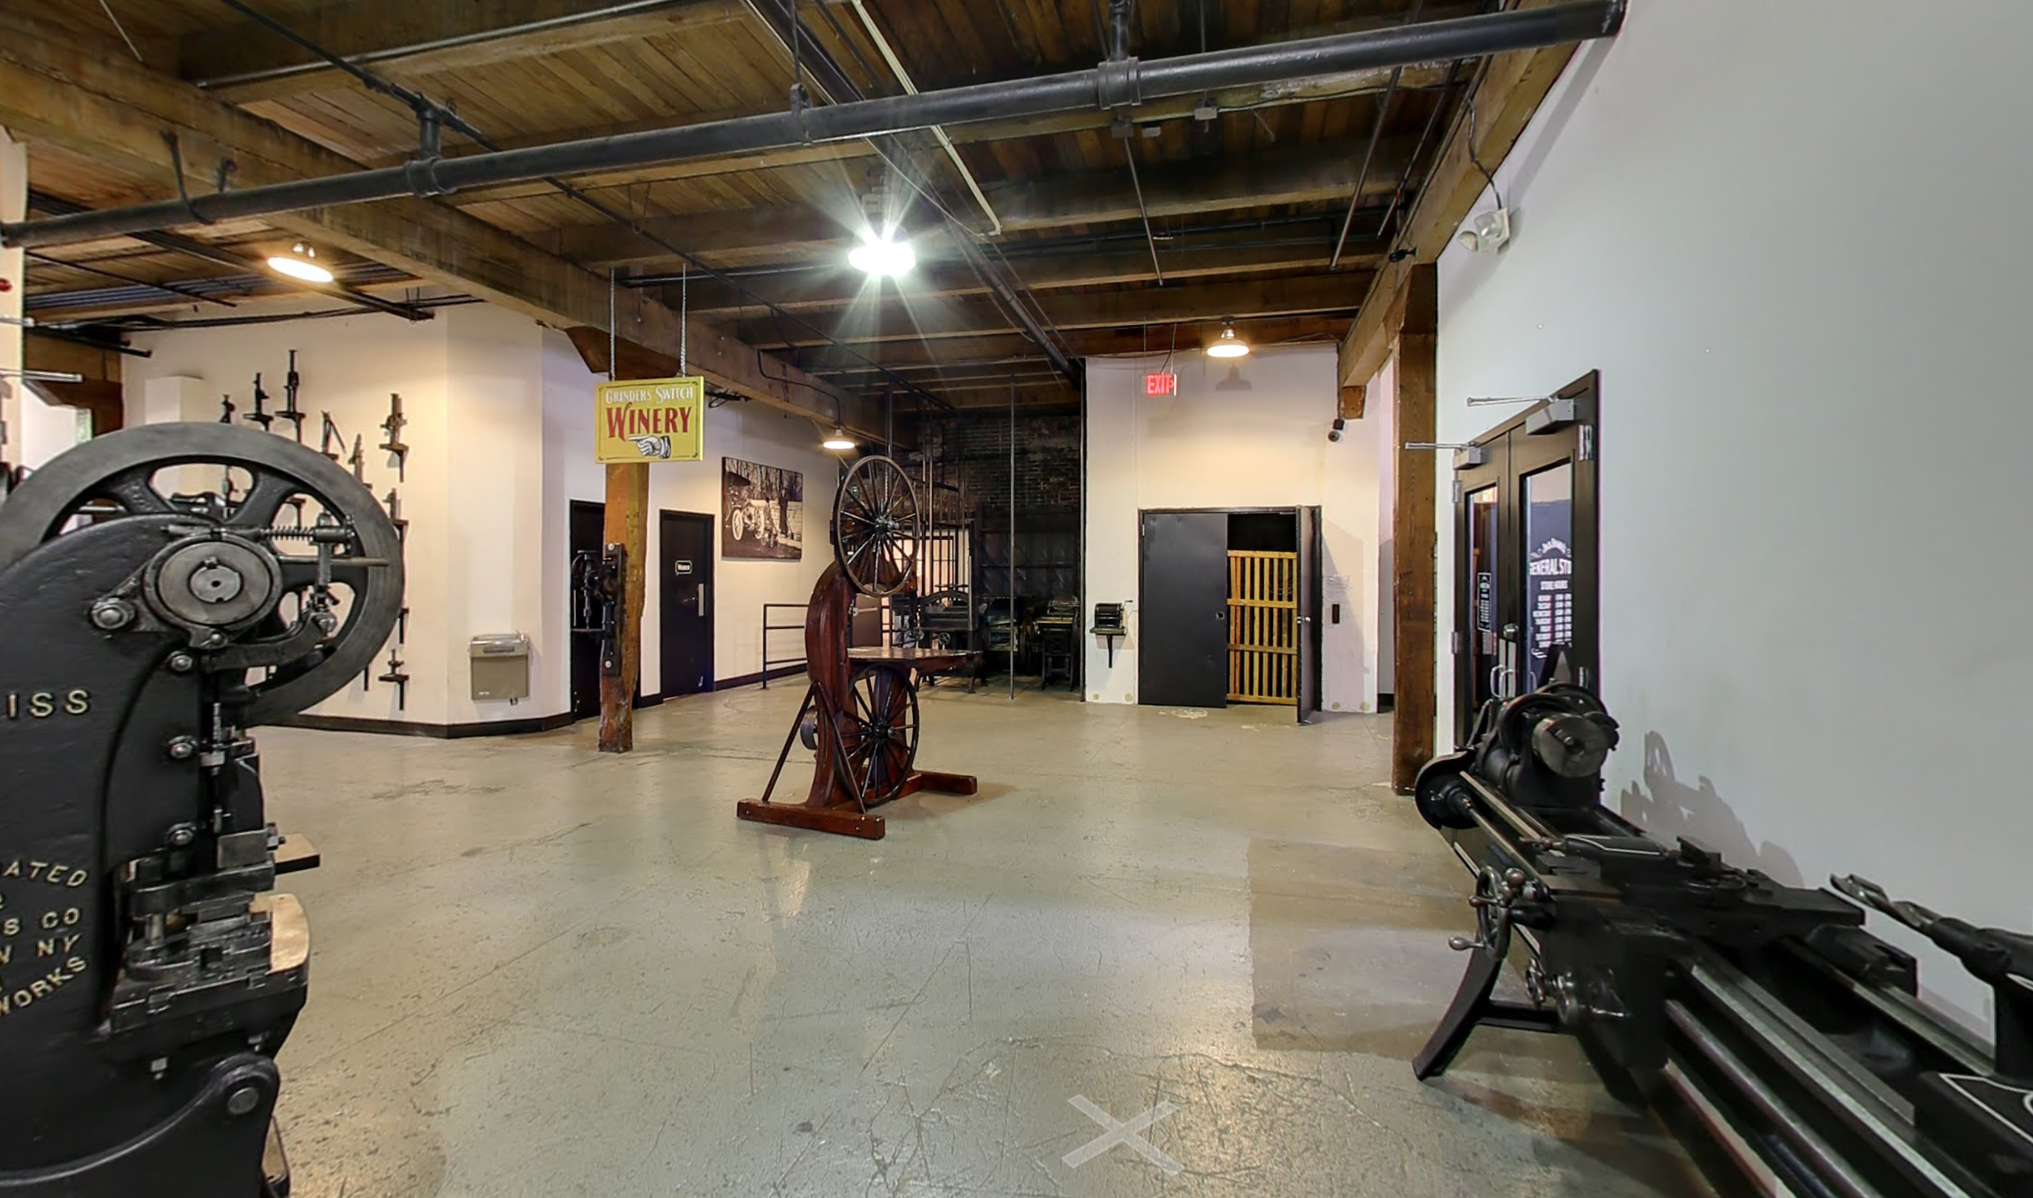 This Is Inside The Old Marathon Motor Works Factory In Nashville